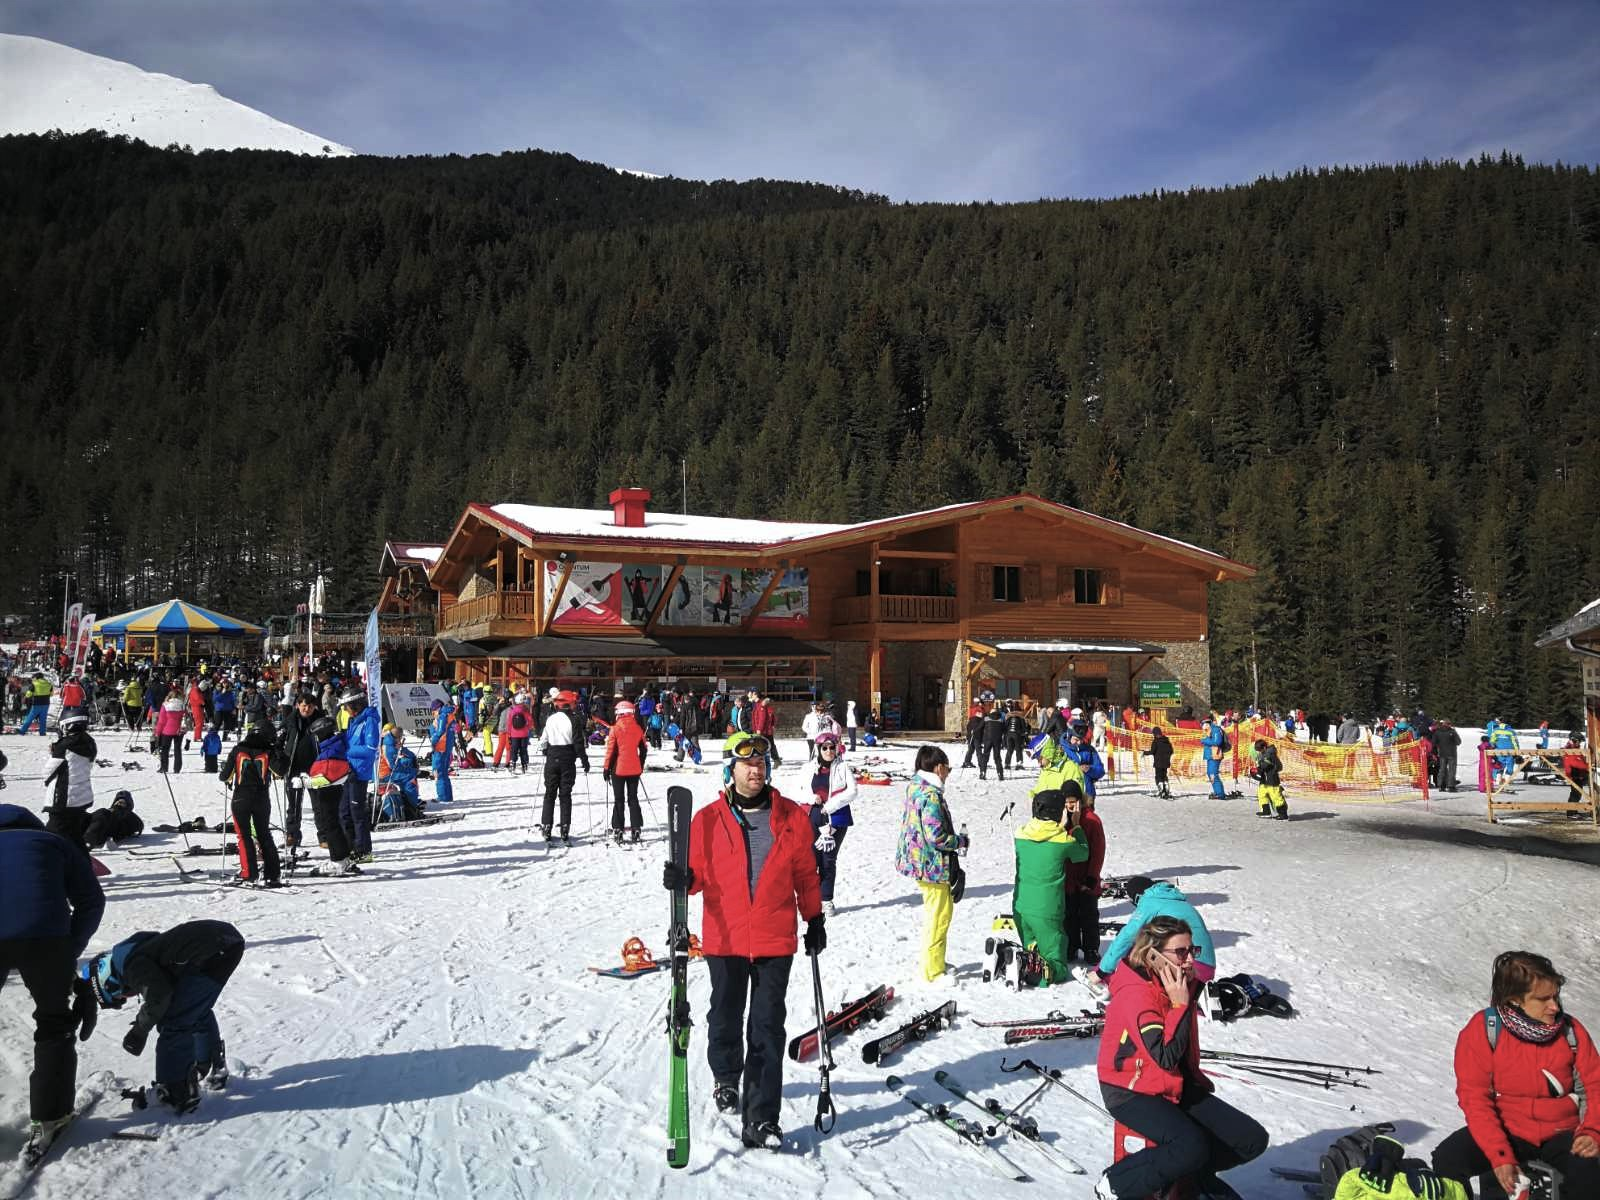 Busy slopes